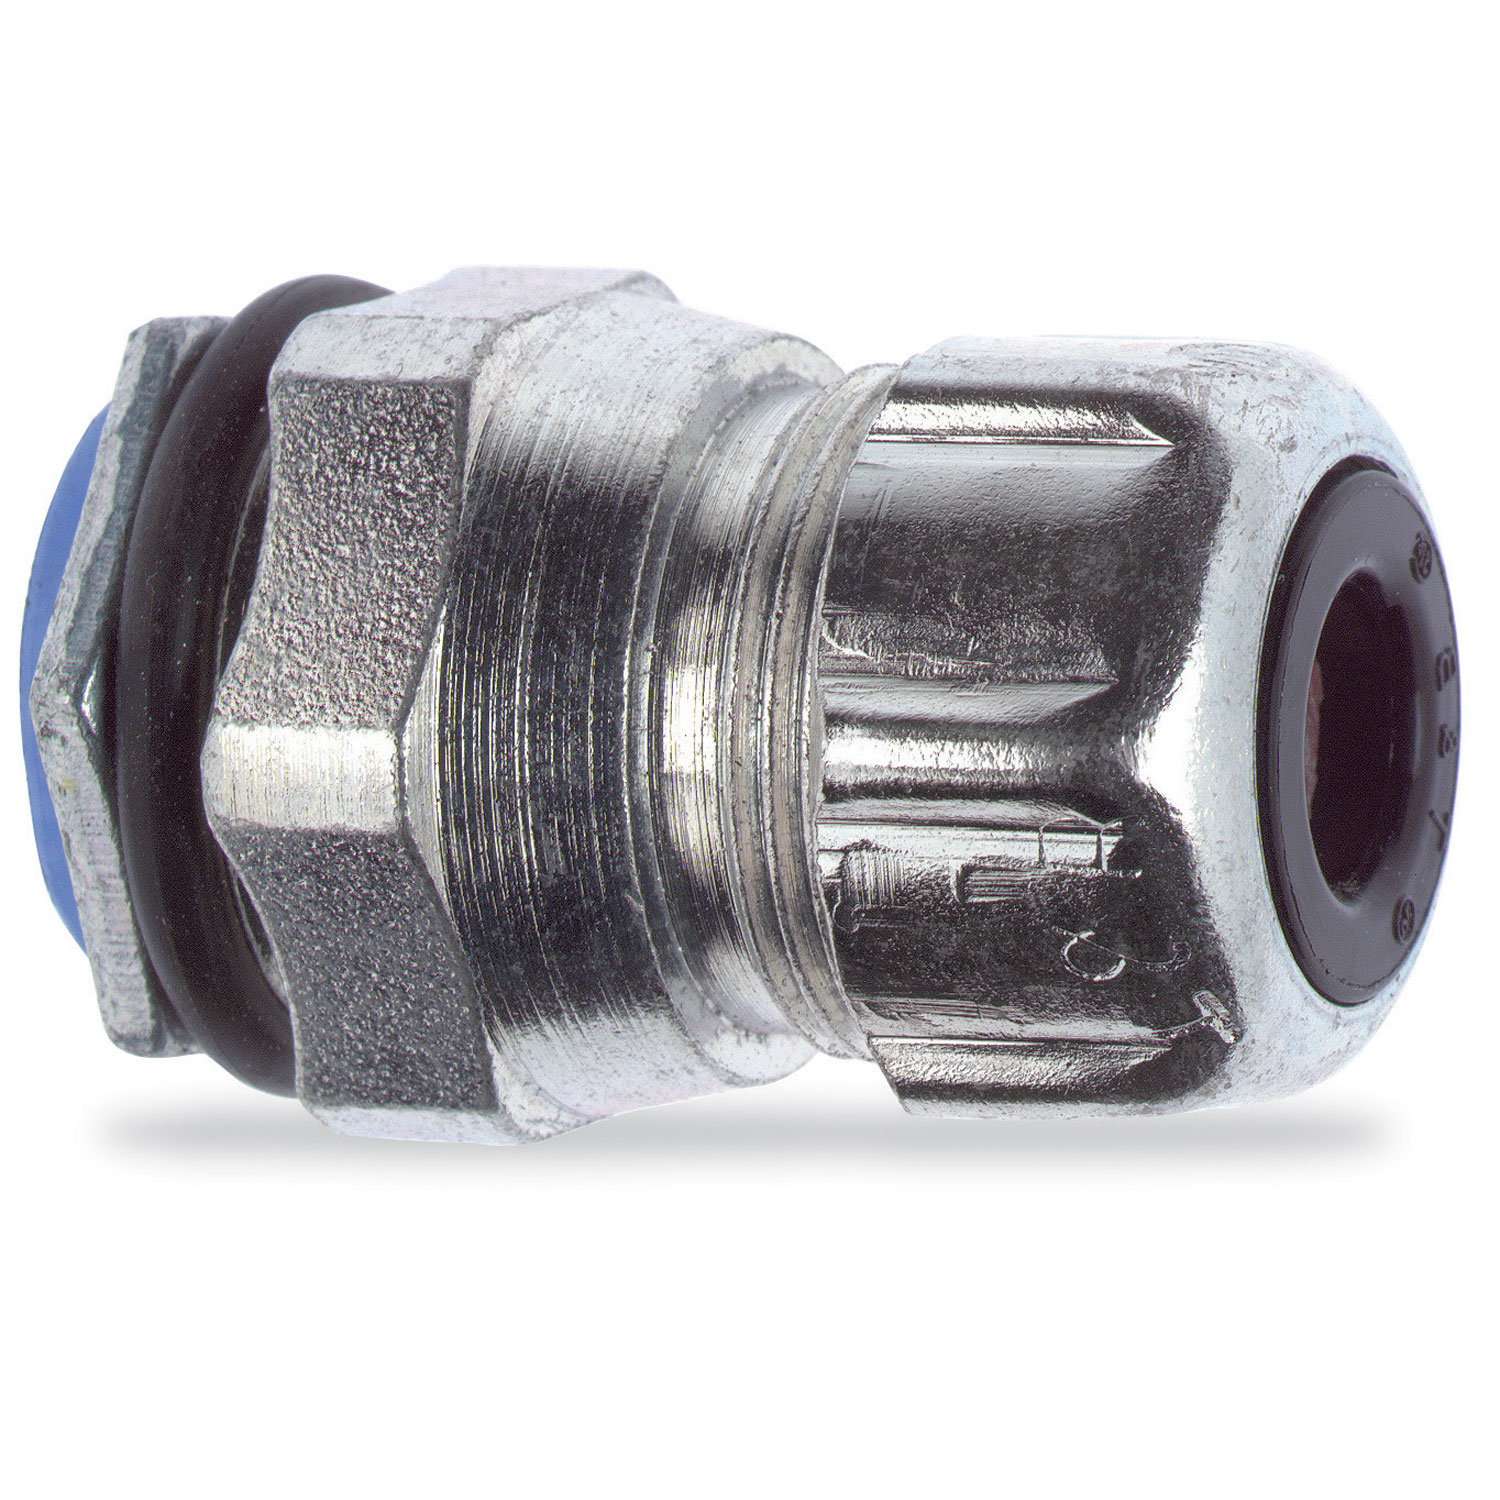 T&B Industrial Fitting,2638,T&B Industrial Fitting 2638 Flexible Liquidtight Cord Connector, 3/4 in Trade, 0.25 - 0.375 in Cable Openings, Steel